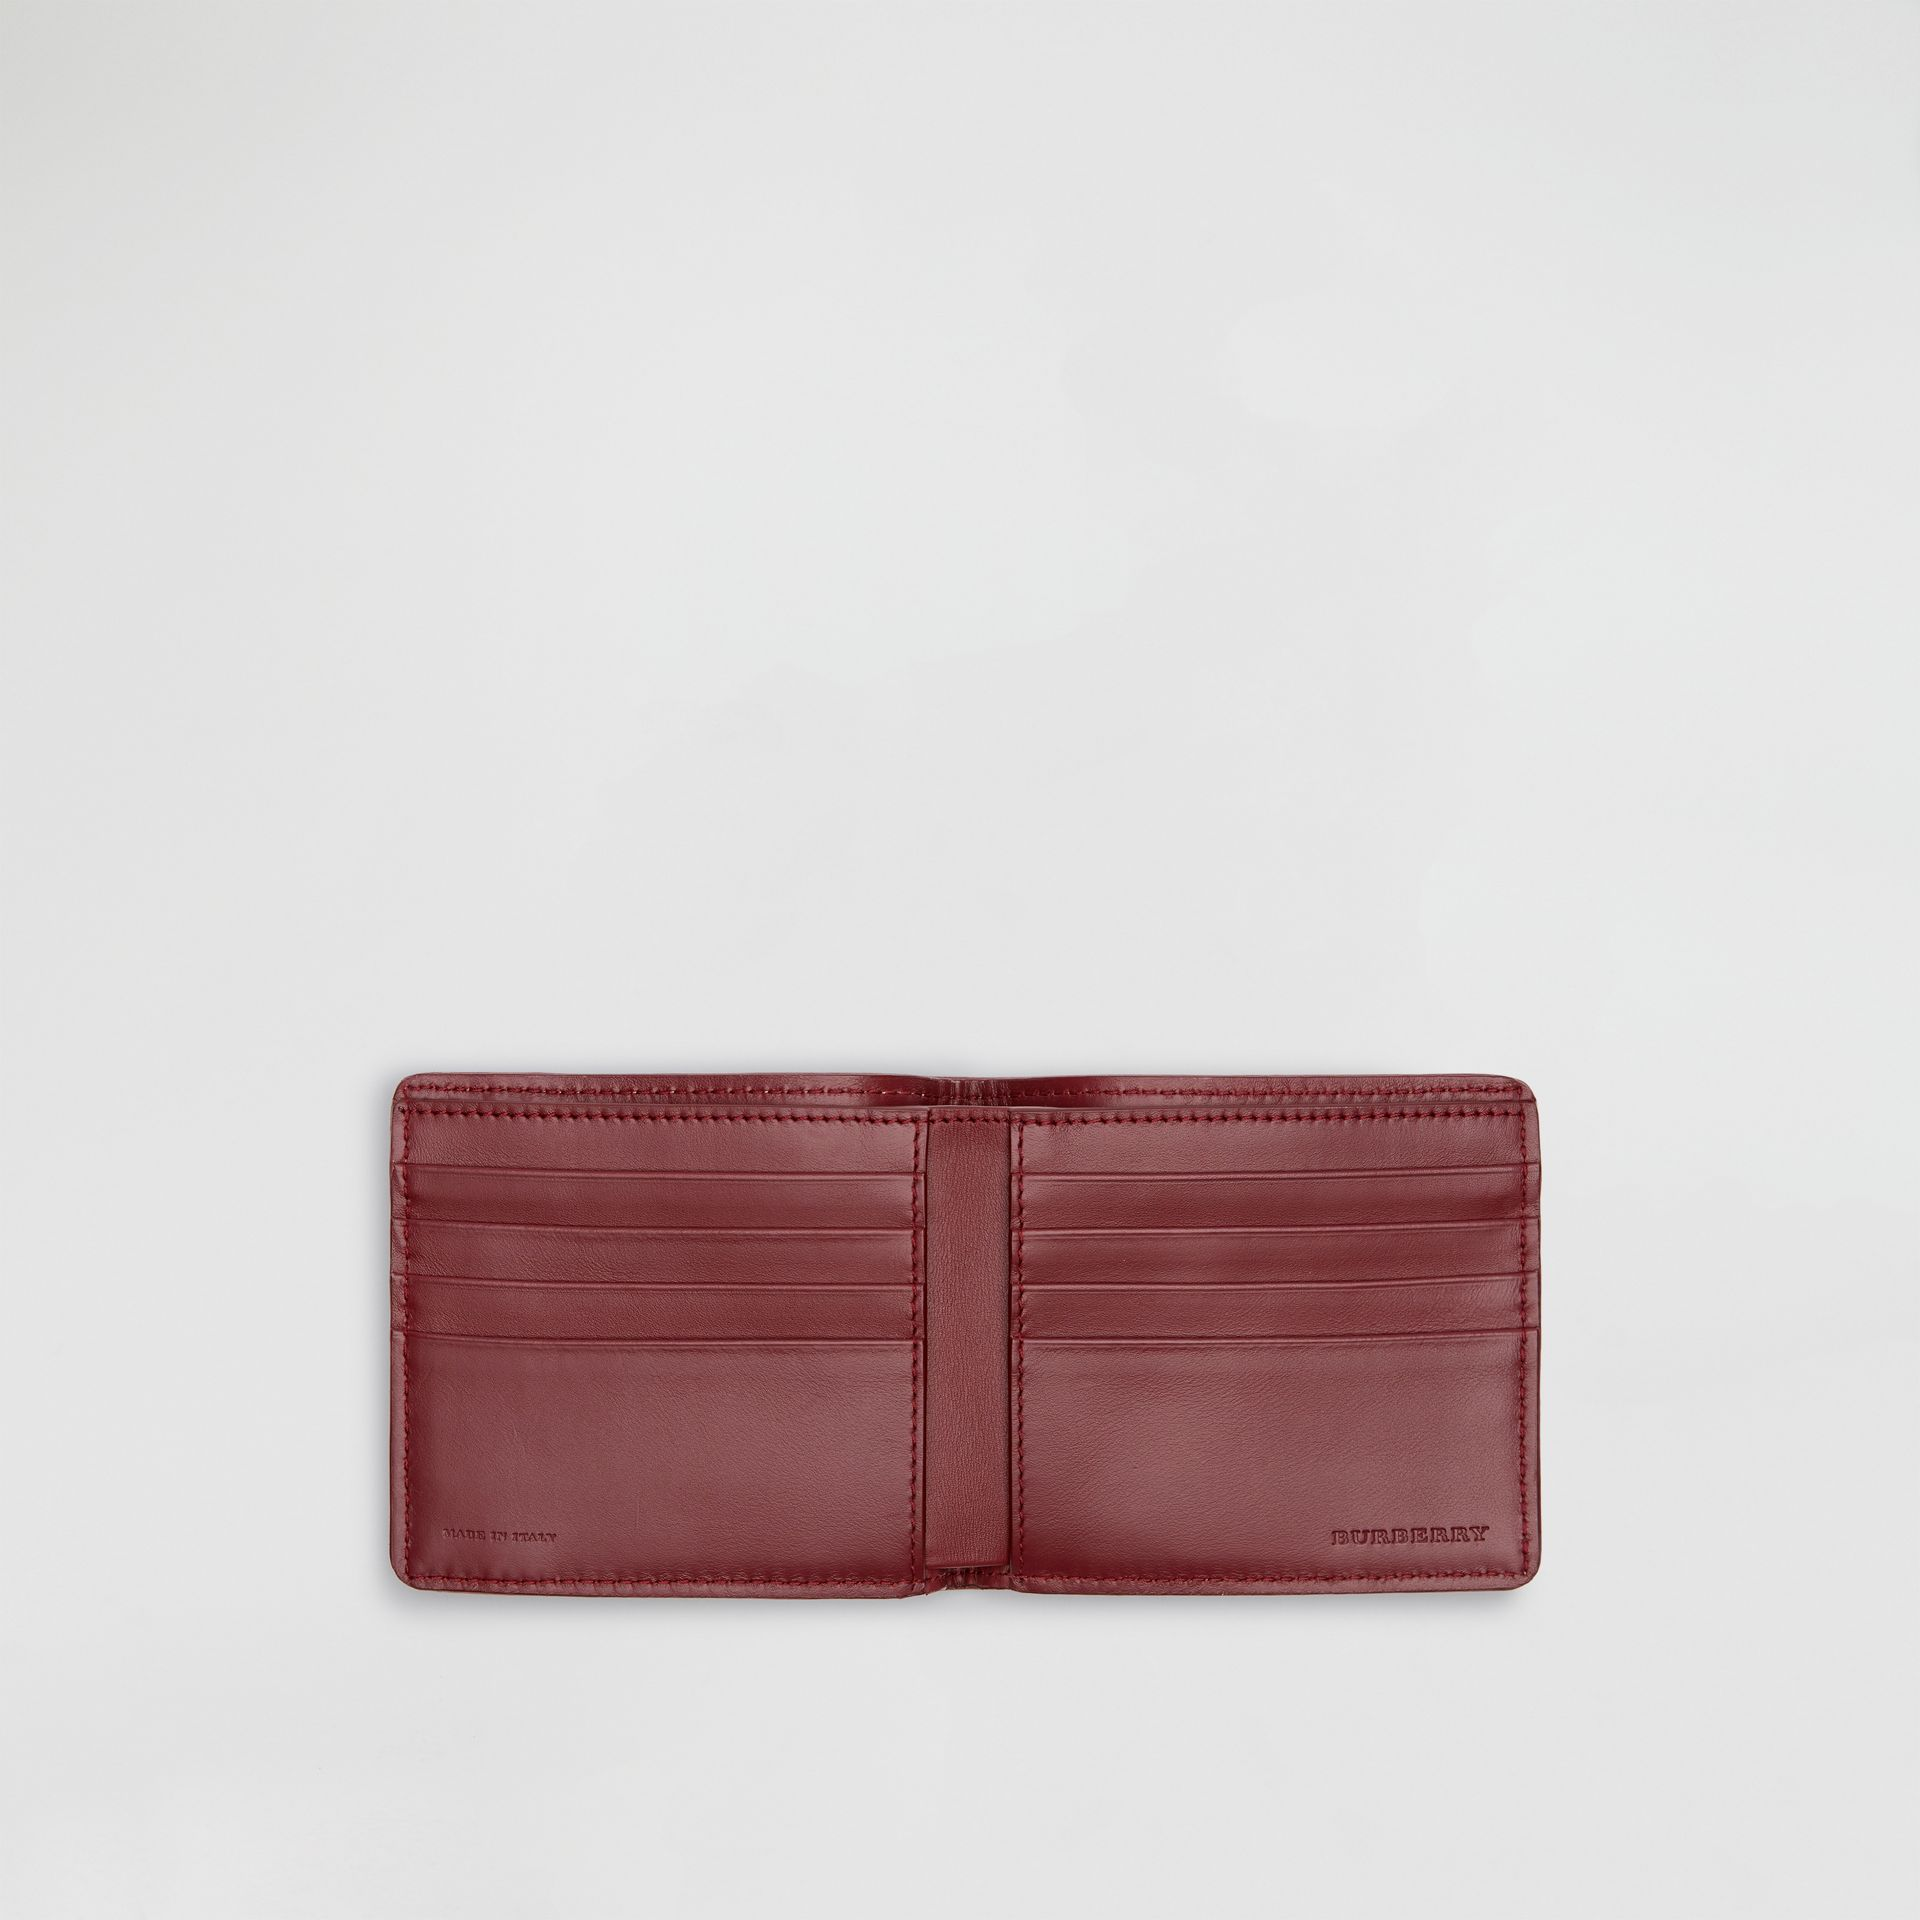 1983 Check and Leather International Bifold Wallet in Antique Red - Men | Burberry - gallery image 3